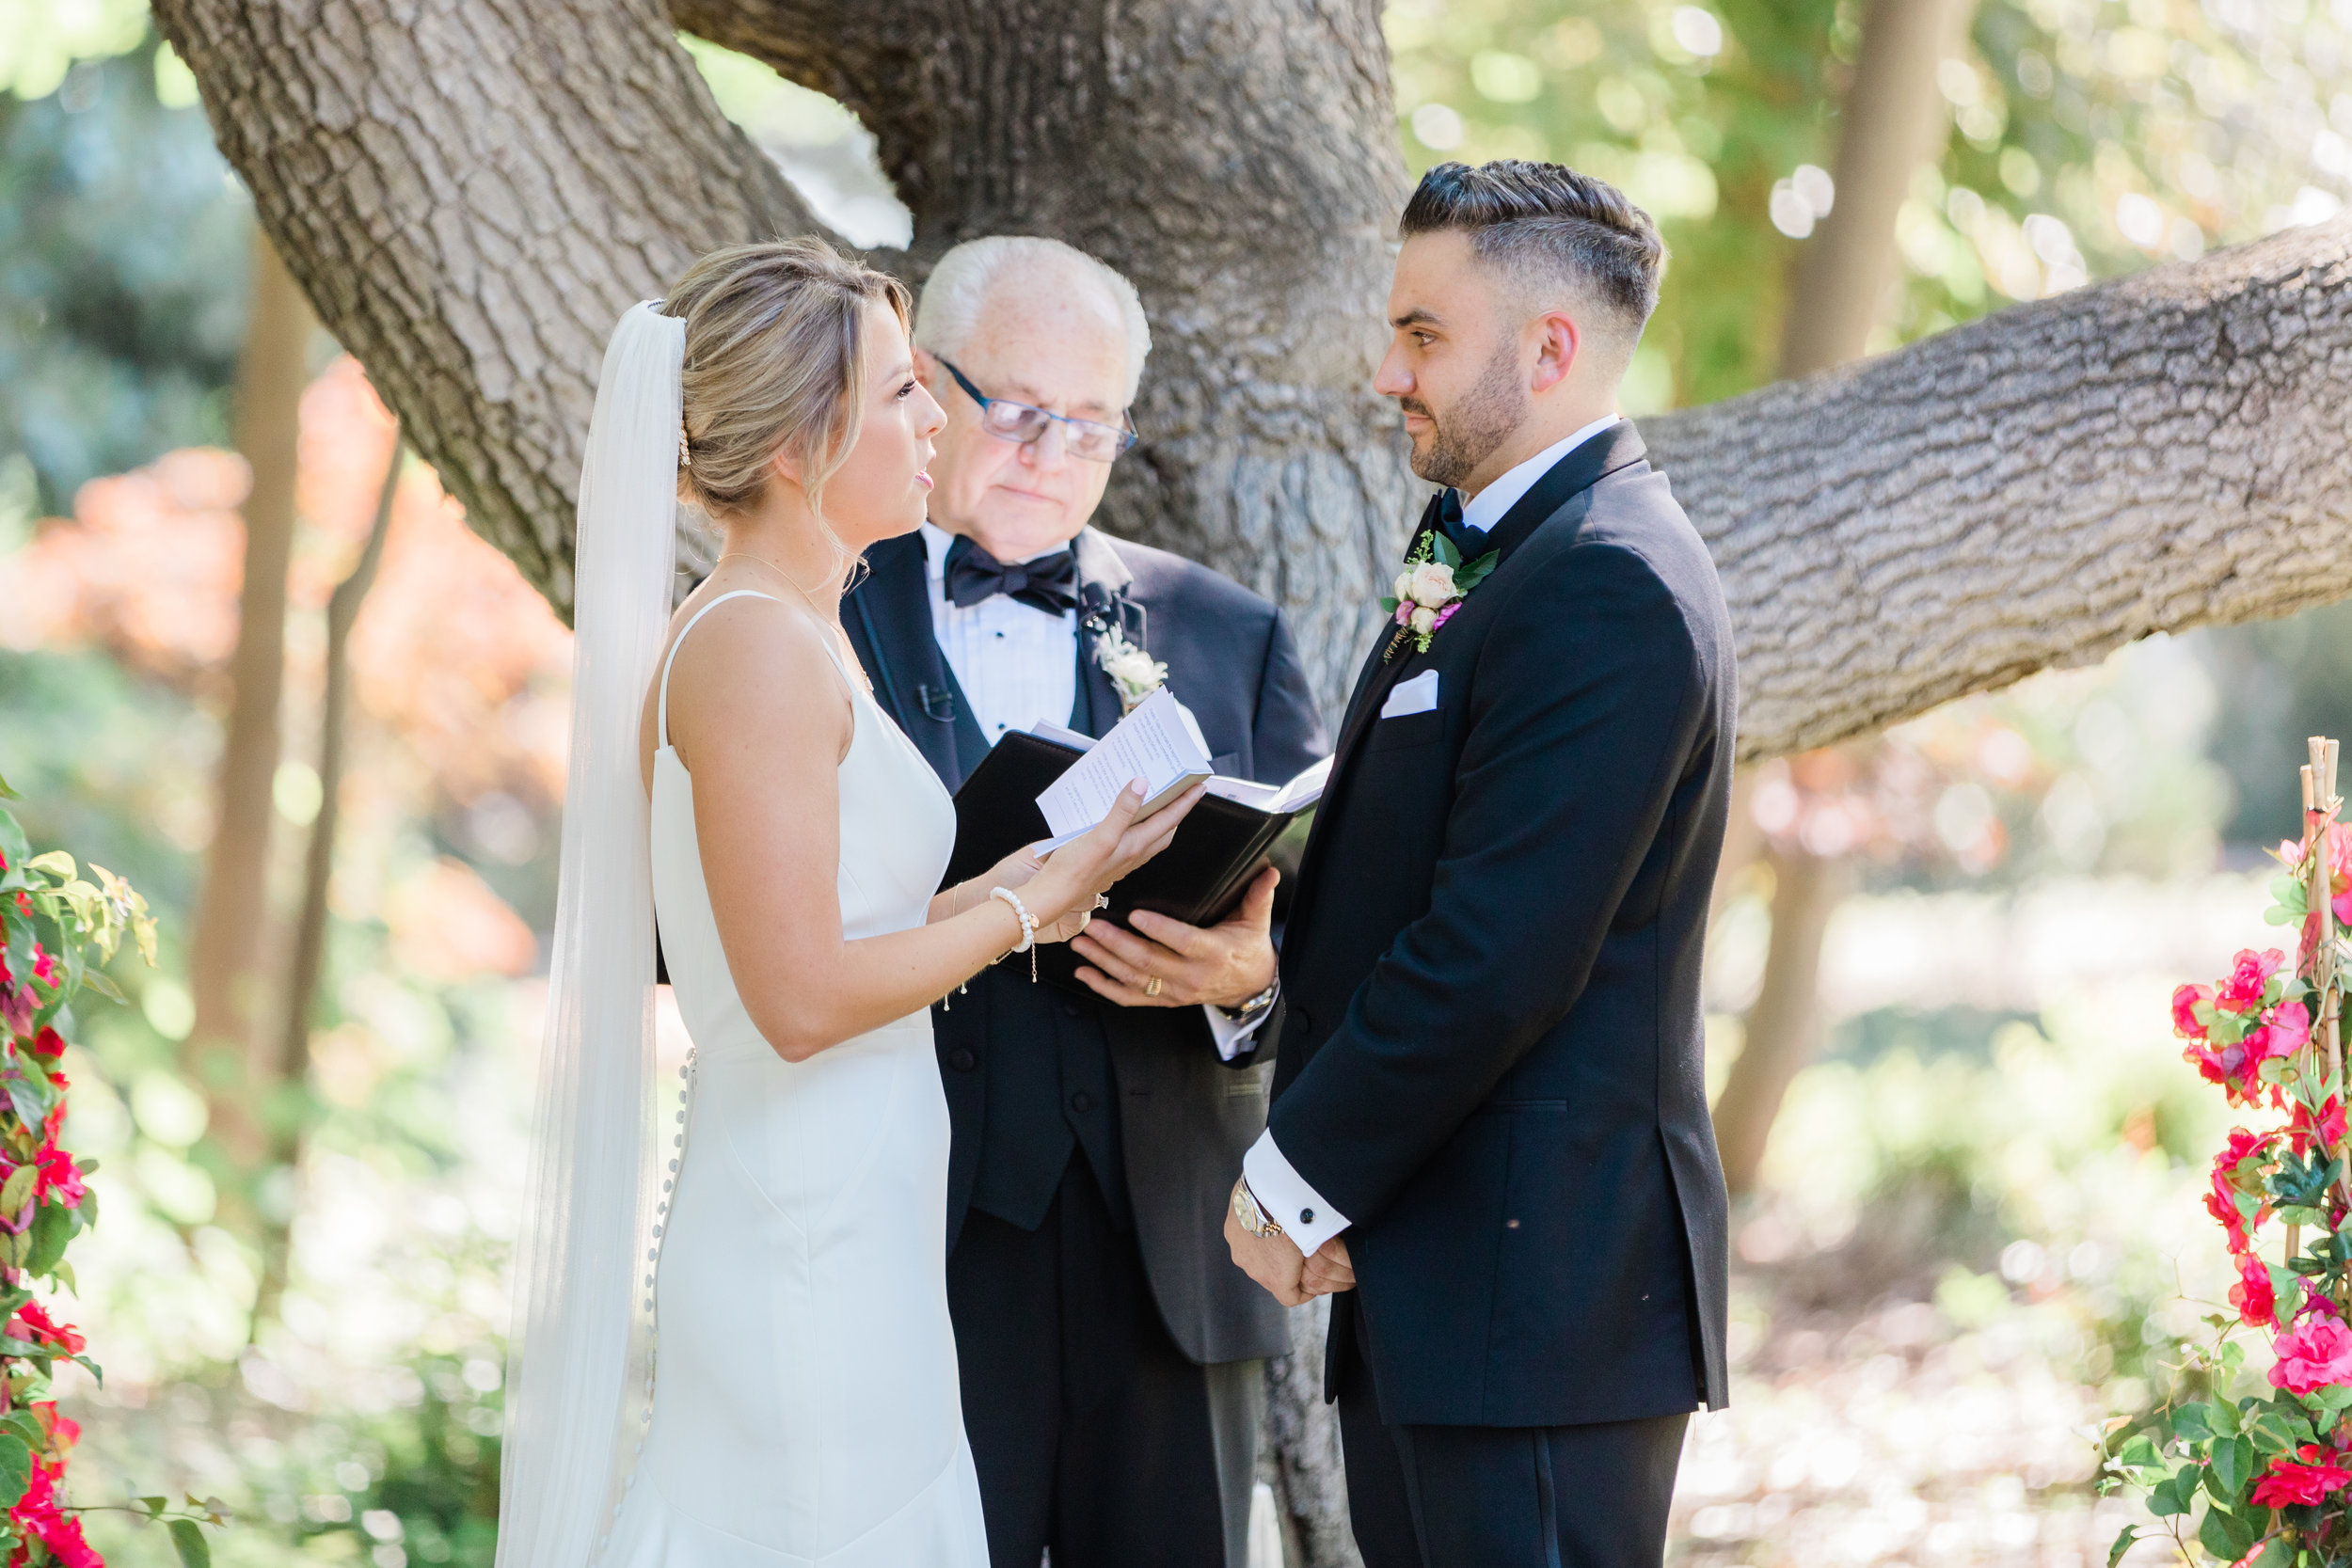 Allie and Wes - Married - Sneak Peeks-34.jpg